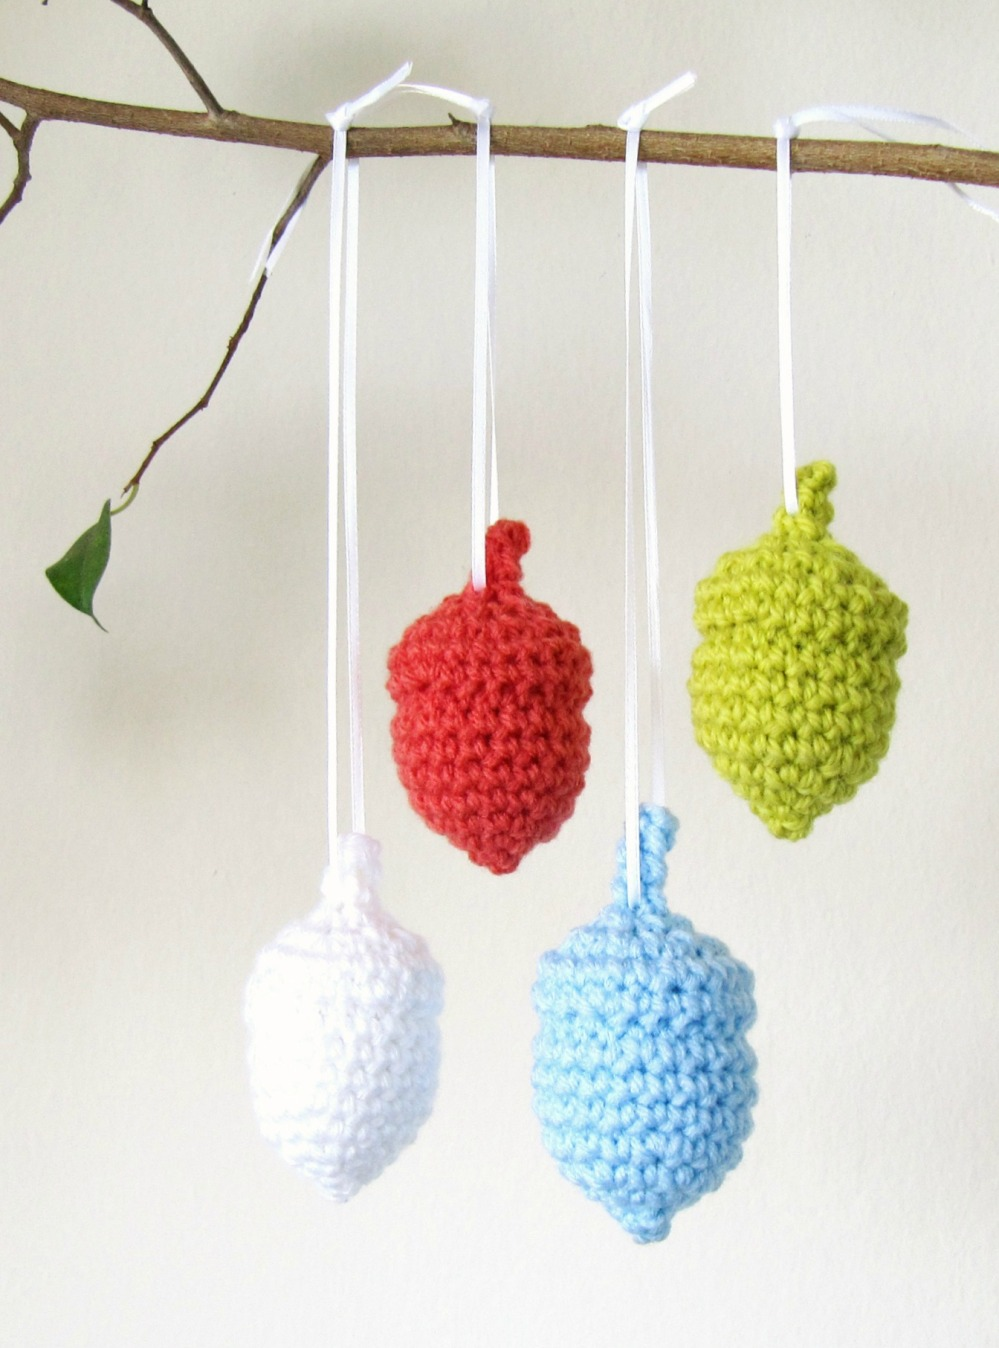 Crochet Acorn Ornaments